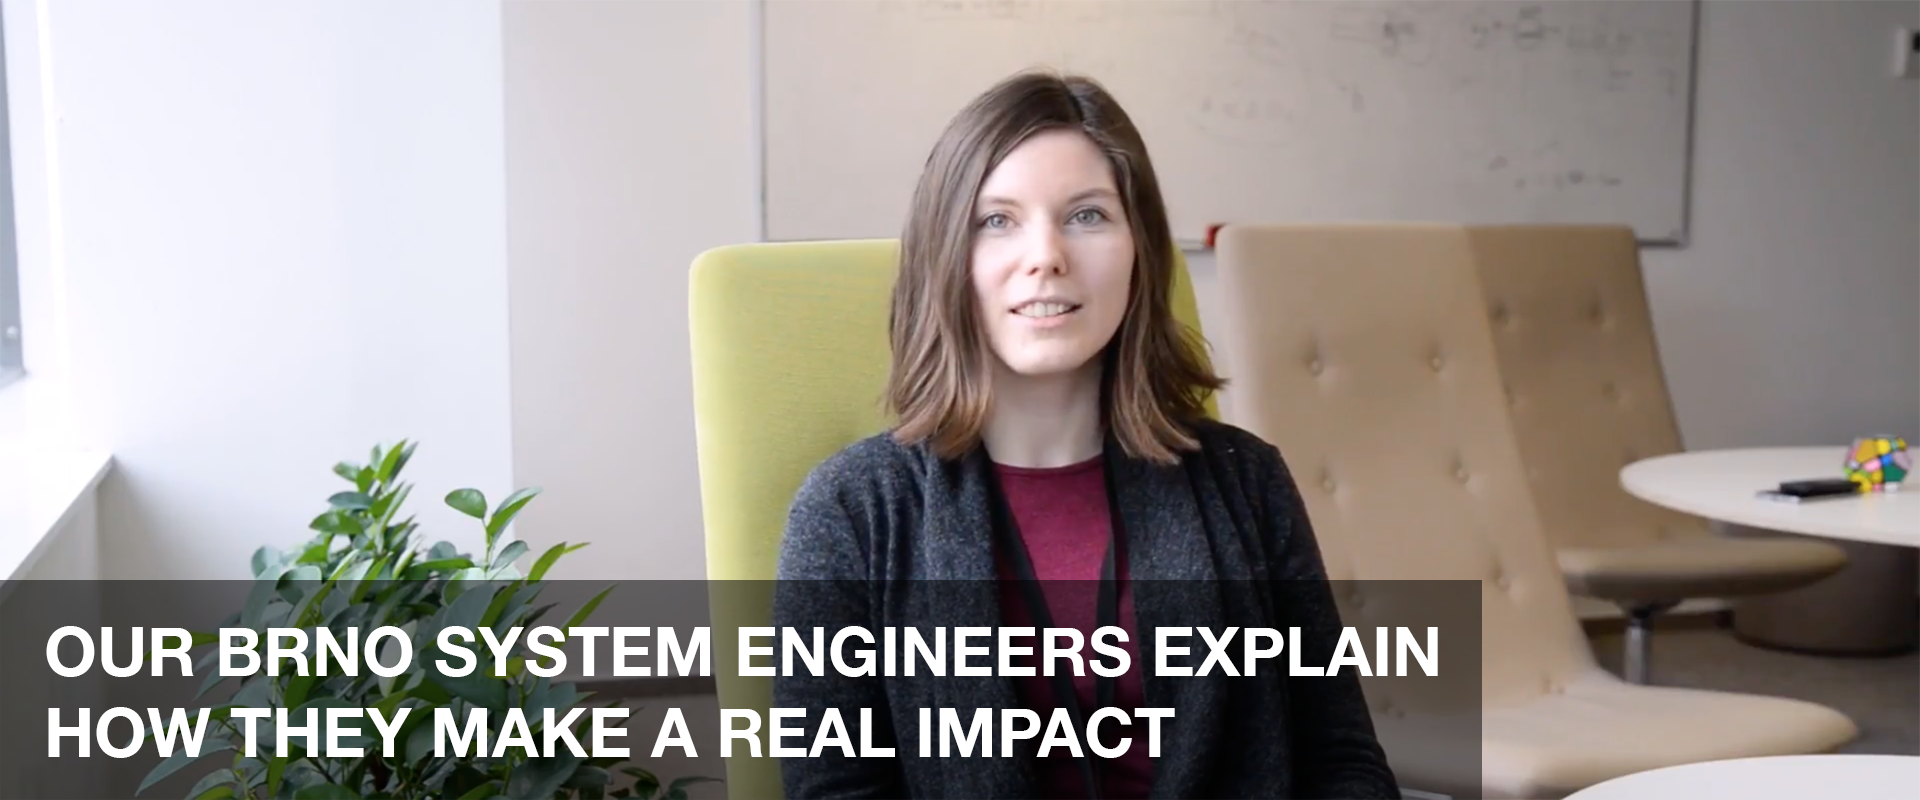 OUR BRNO SYSTEM ENGINEERS EXPLAIN HOW THEY MAKE A REAL IMPACT